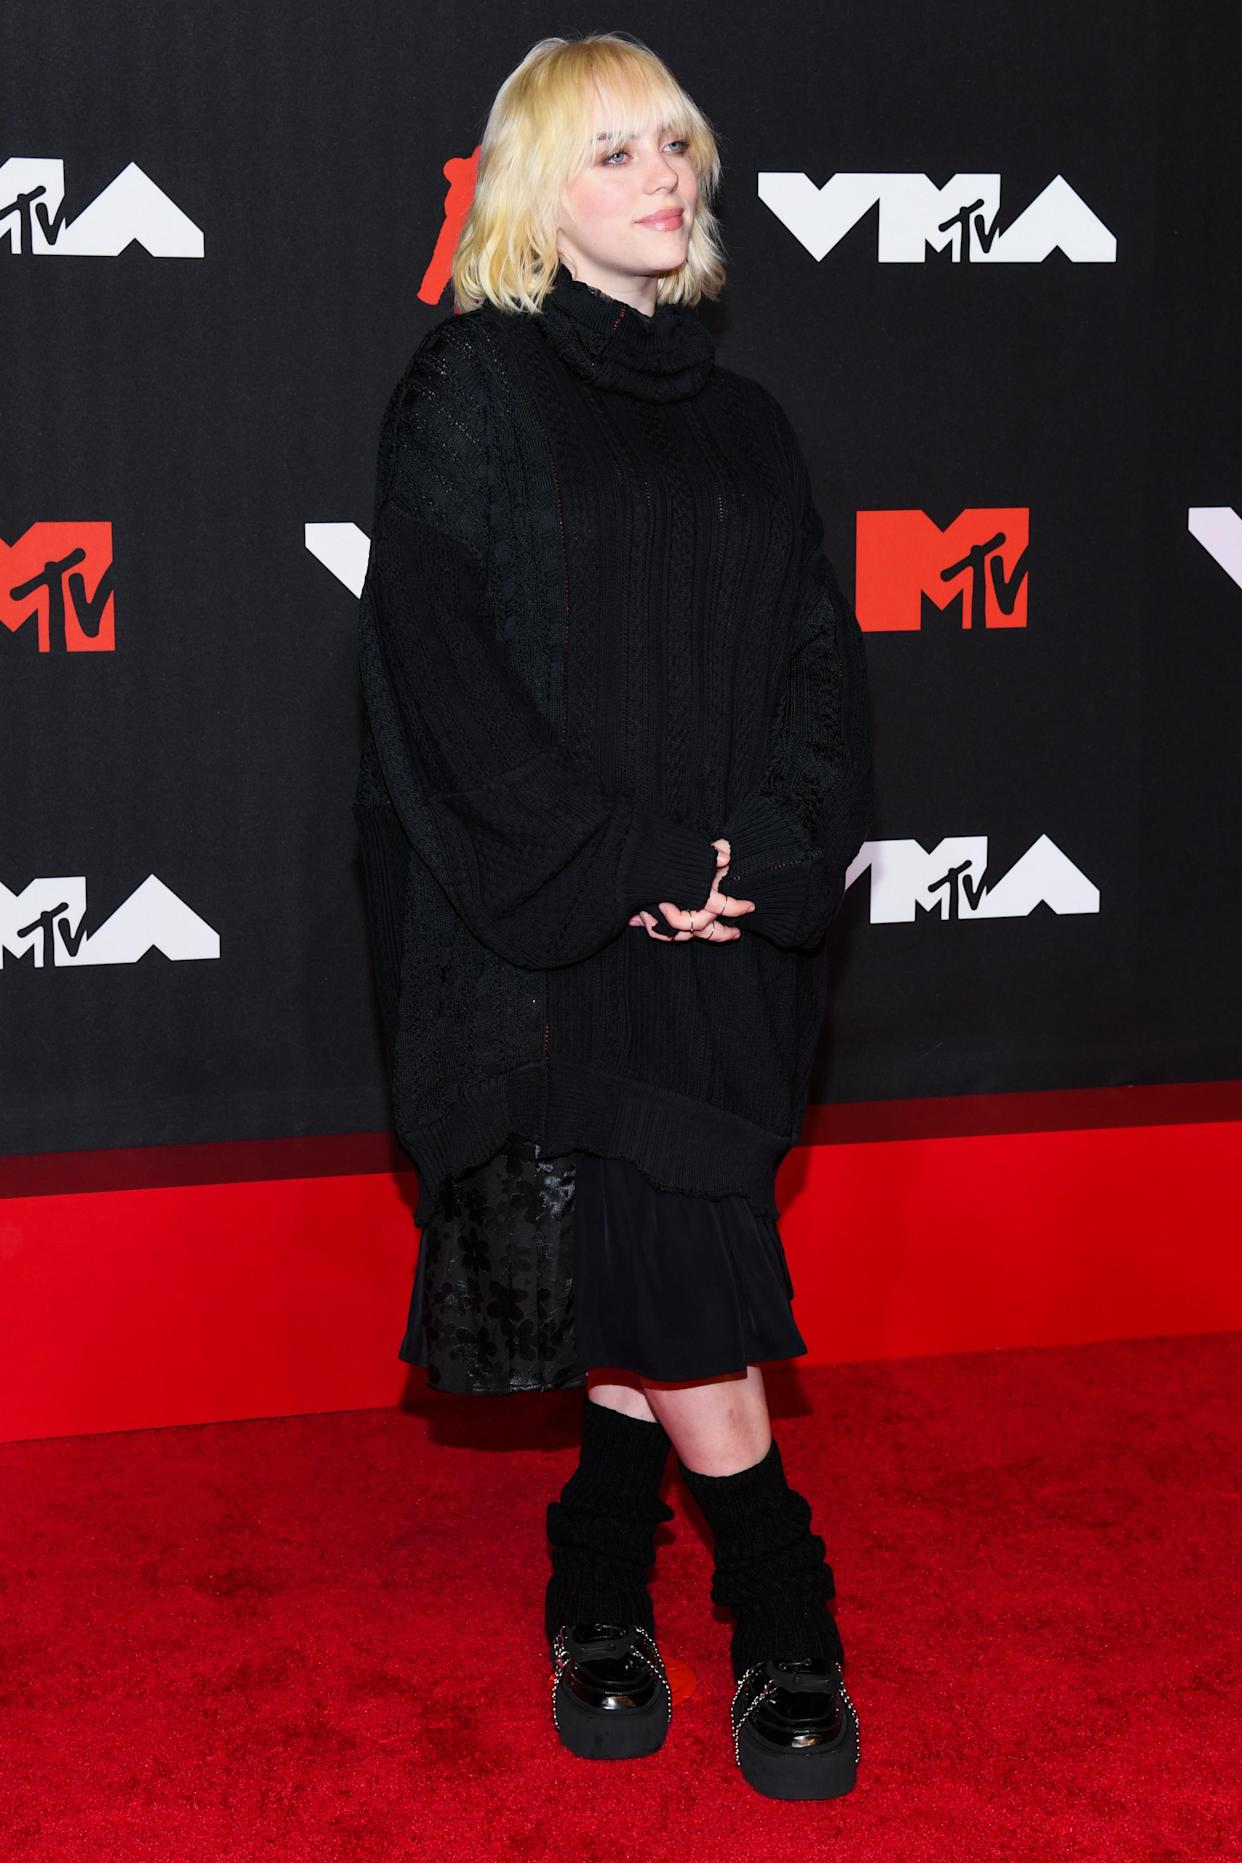 Billie Eilish walking on the red carpet at the 2021 MTV Video Music Awards held at the Barclay's Center in Brooklyn, NY on September 12, 2021. (Photo by Anthony Behar/Sipa USA)